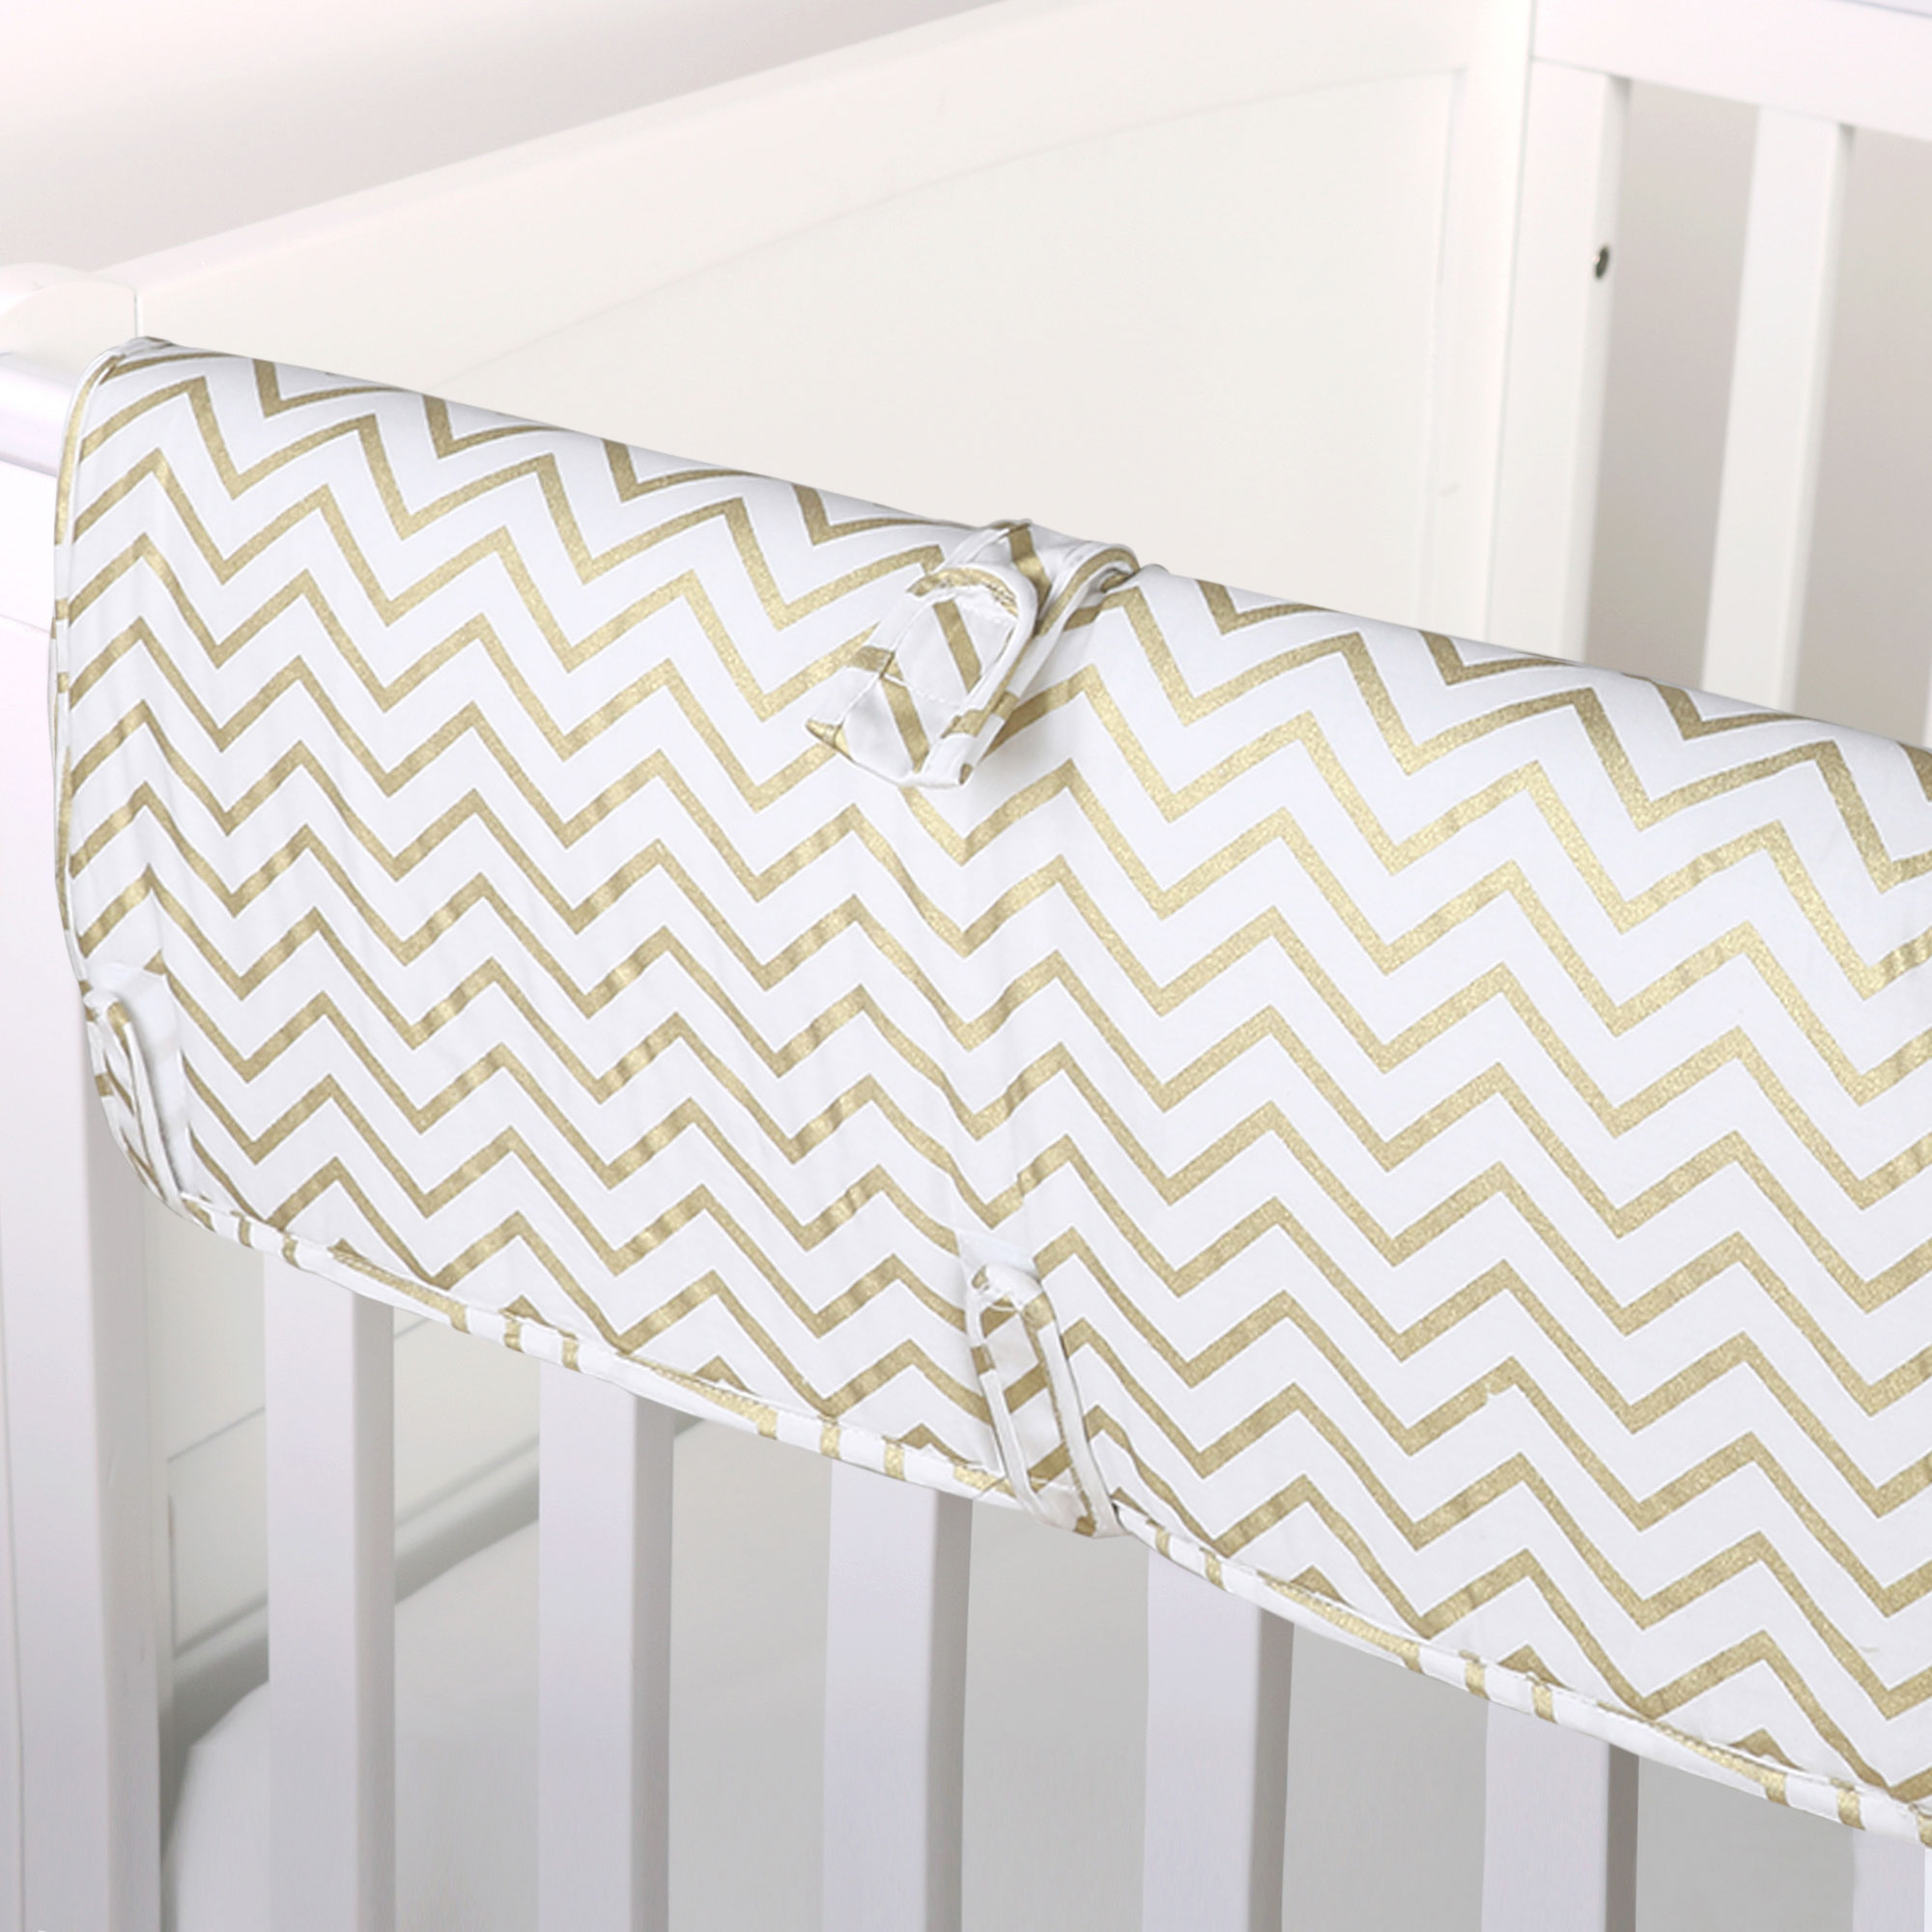 The Peanut Shell Baby Crib Rail Guard - Metallic Gold Zig Zag Print - 100% Cotton Sateen Cover, Polyester Fill